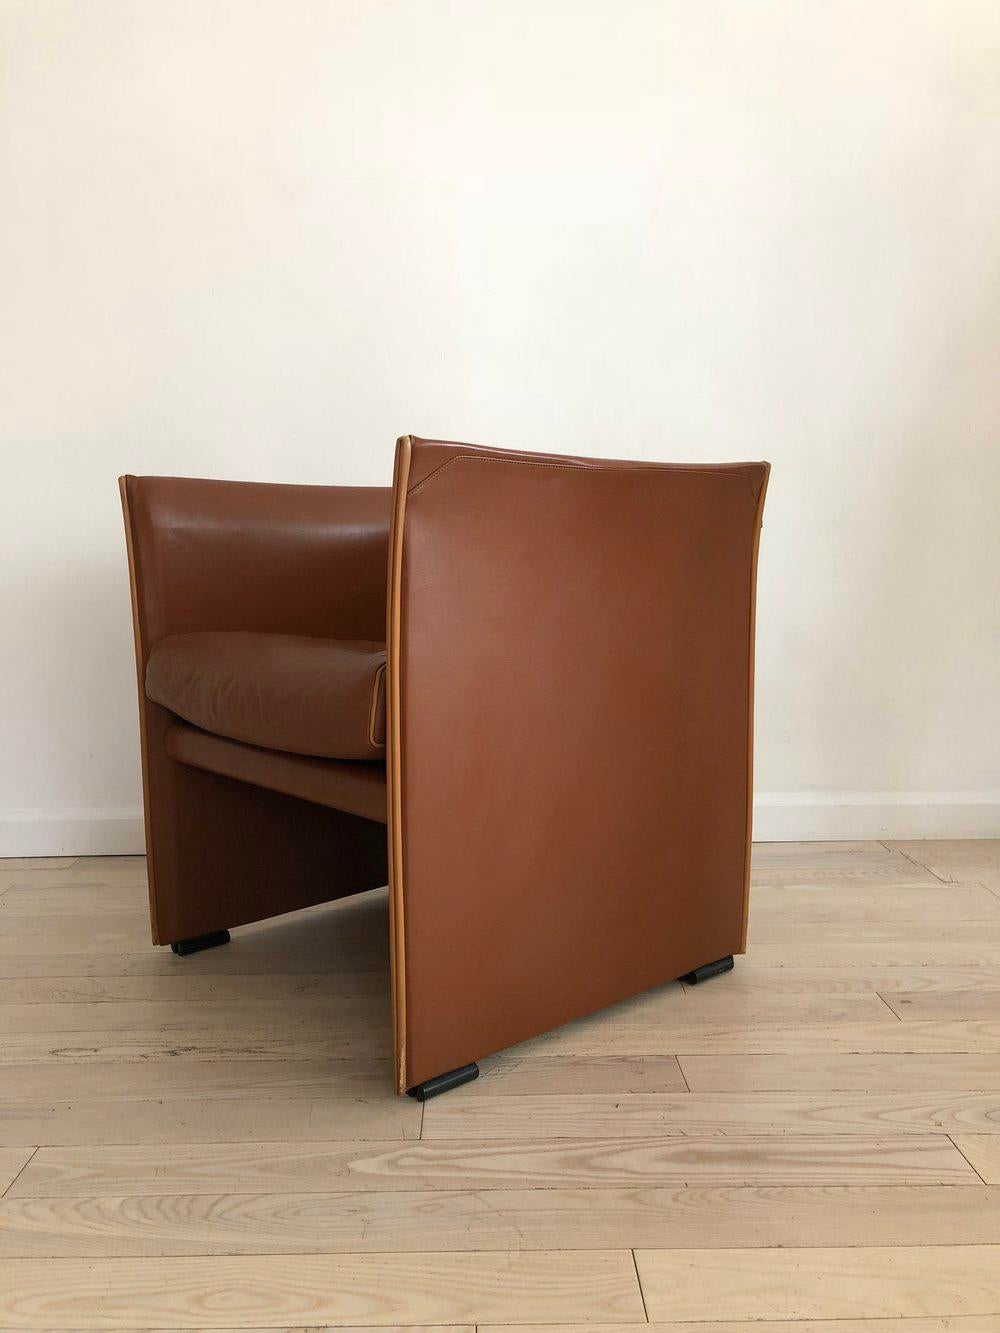 Mario Bellini For Cassina Brown Leather 401 Break Chair   Image 6 Of 13